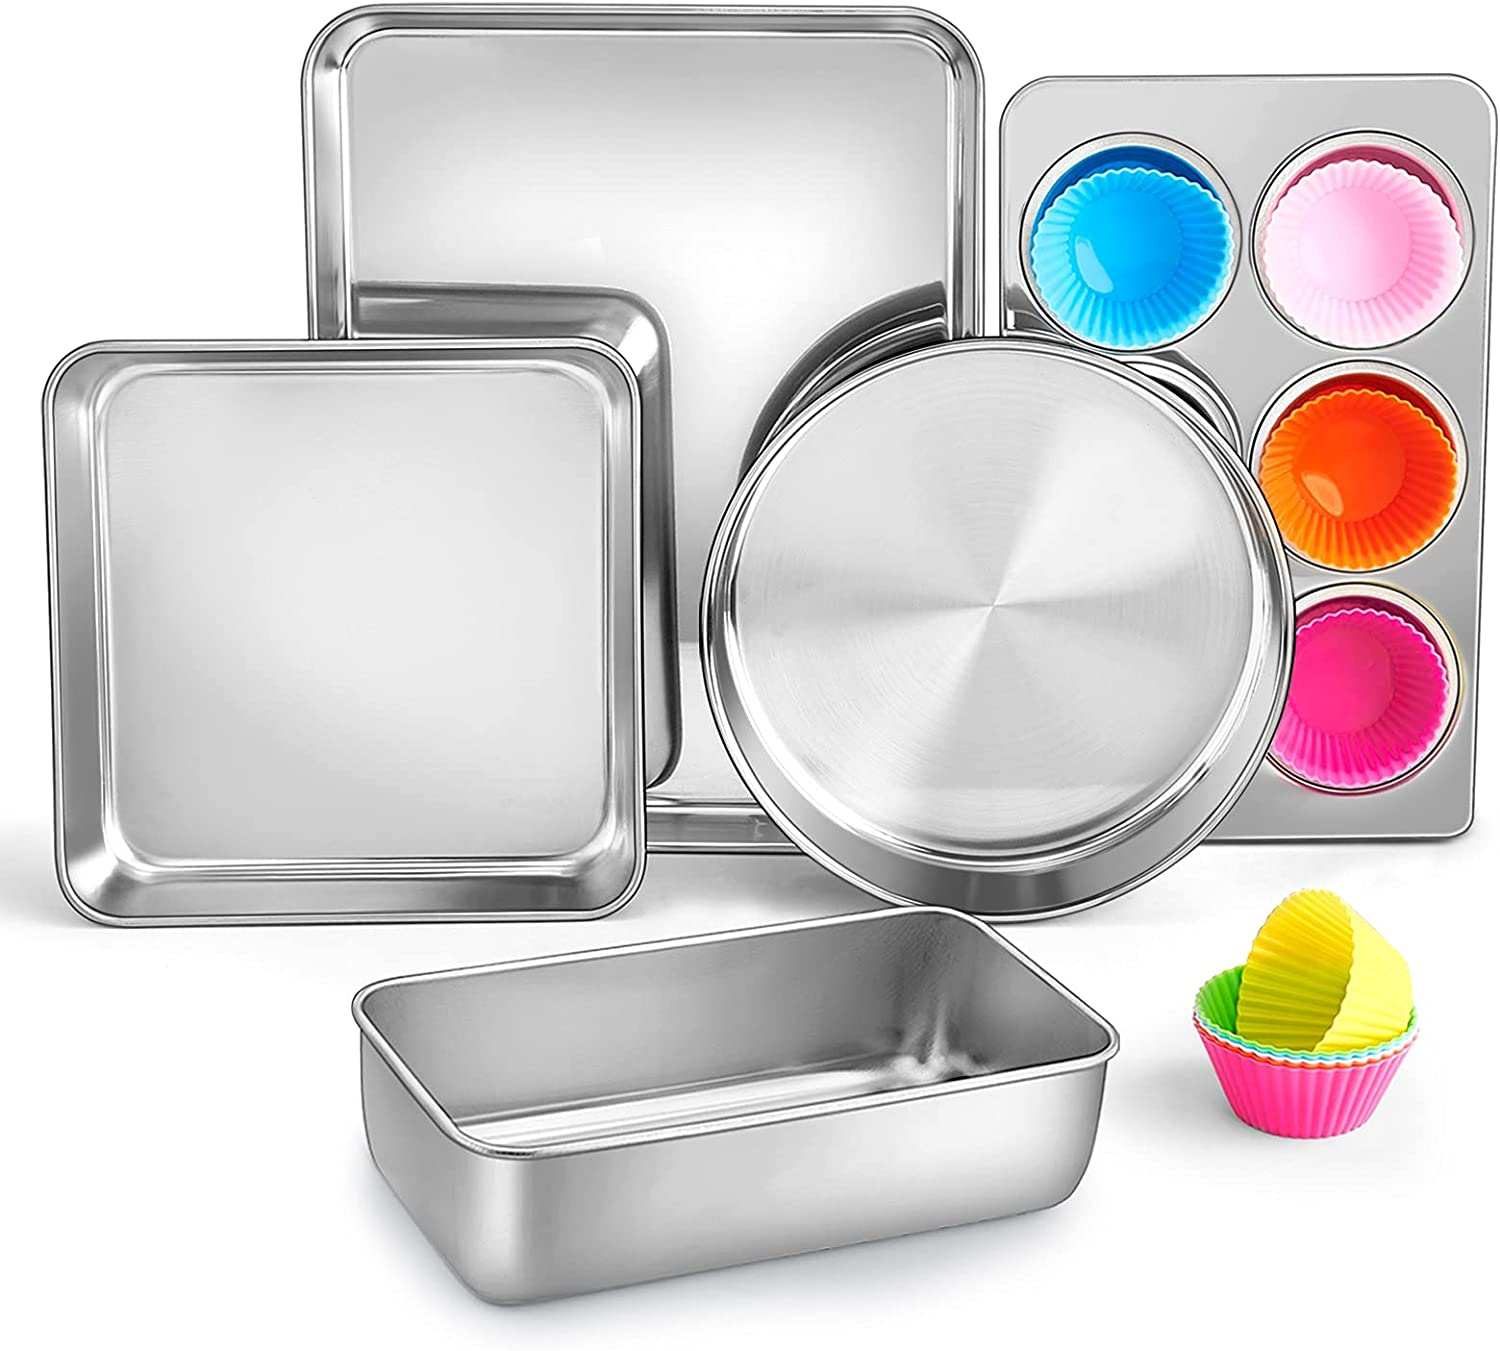 TeamFar Bakeware Set, 17 PCS (5 Pans + 12 Cups), Stainless Steel Toaster Oven Baking Pans with Silicone Cups, Loaf Pan & Muffin Pan, Non-Toxic & Heavy Duty, Reusable & Easy Clean